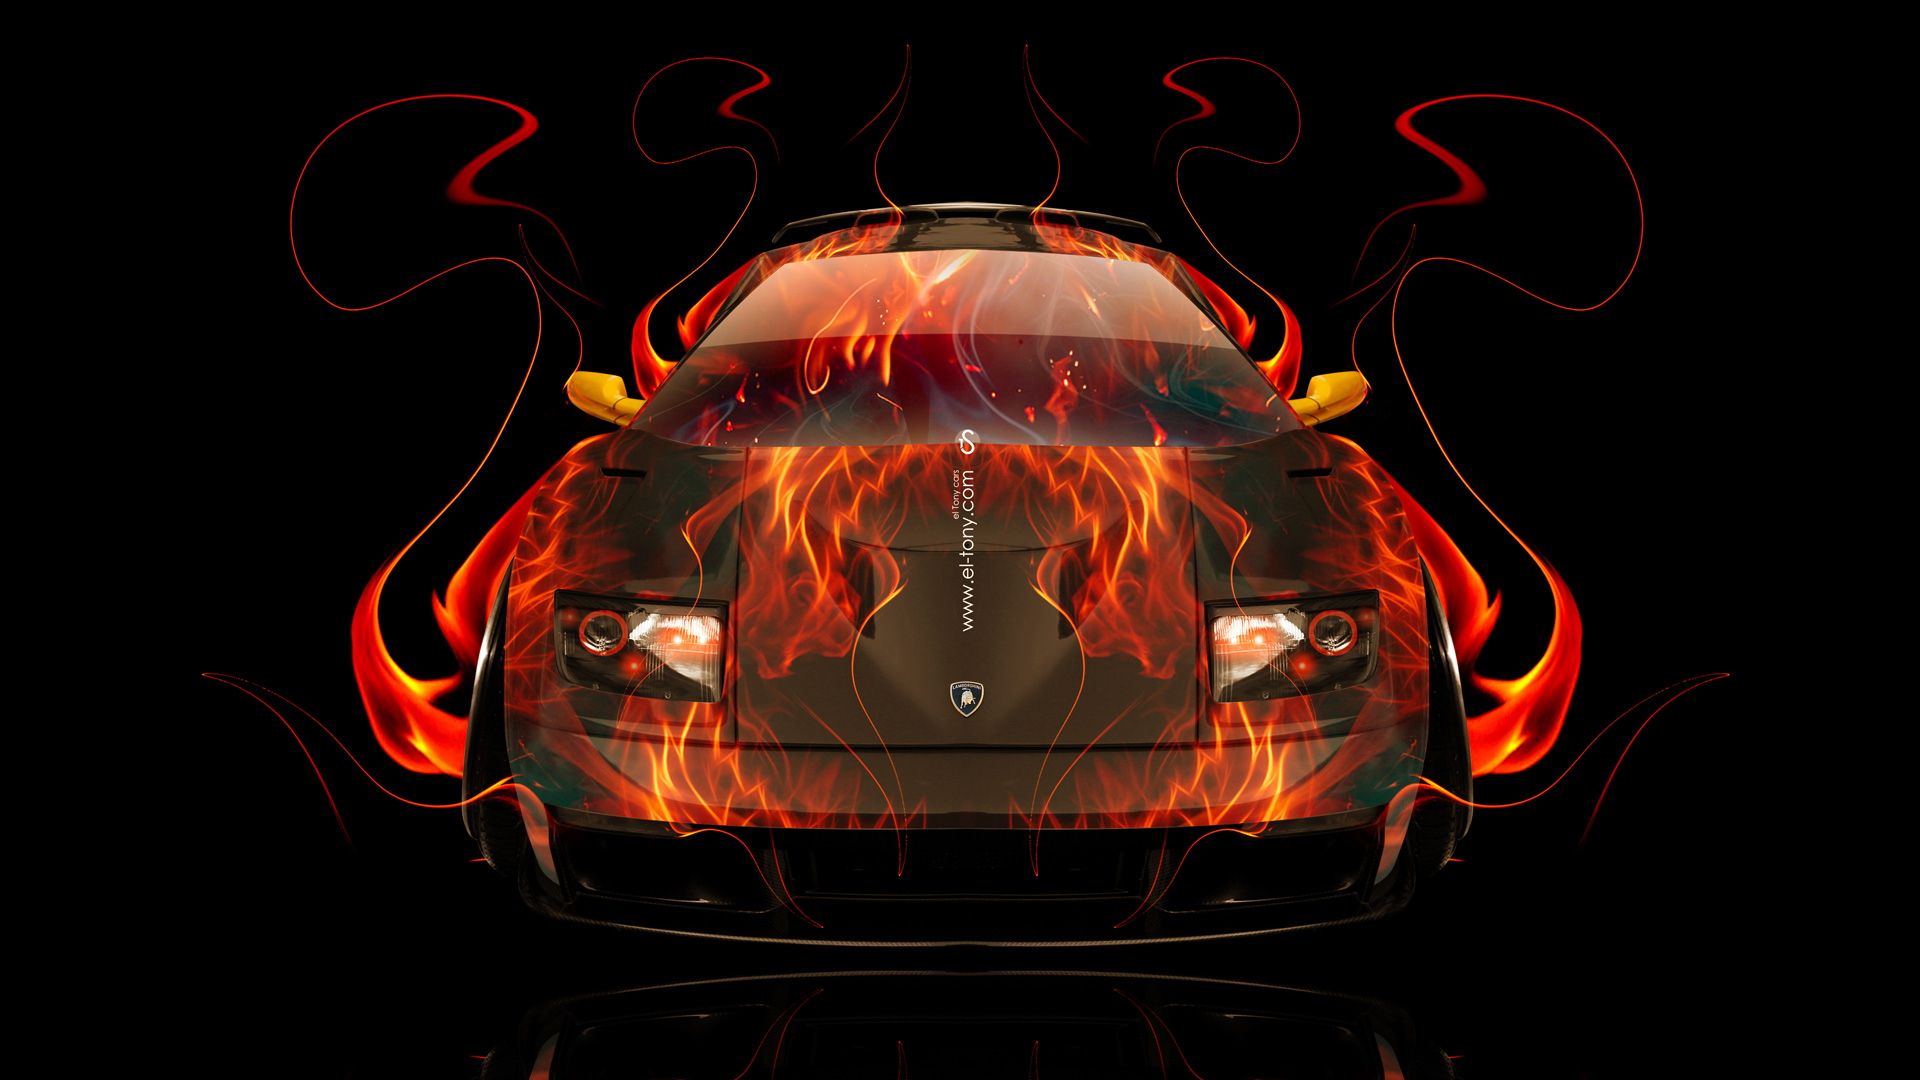 Charming Lamborghini Diablo FrontUp Fire Abstract Car 2014 HD